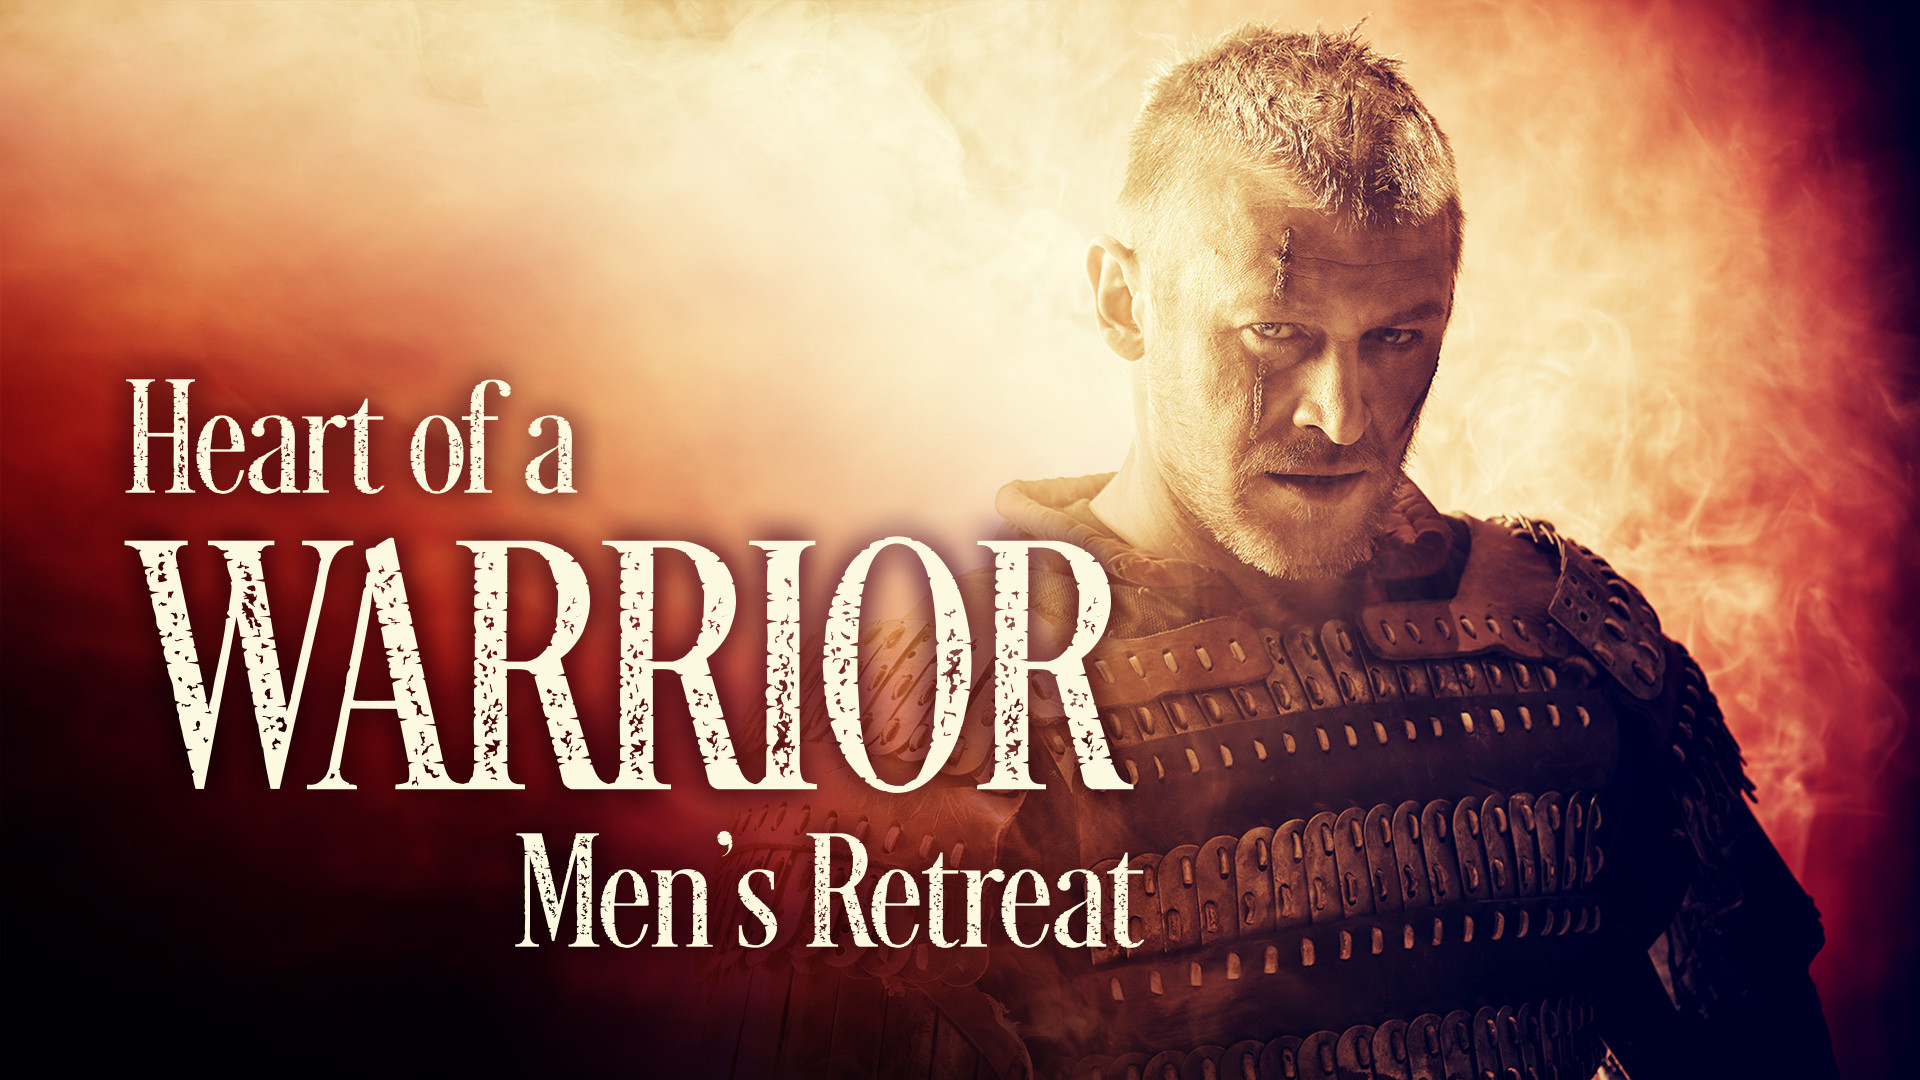 Heart_of_a_Warrior_Mens_Retreat_16x9_201